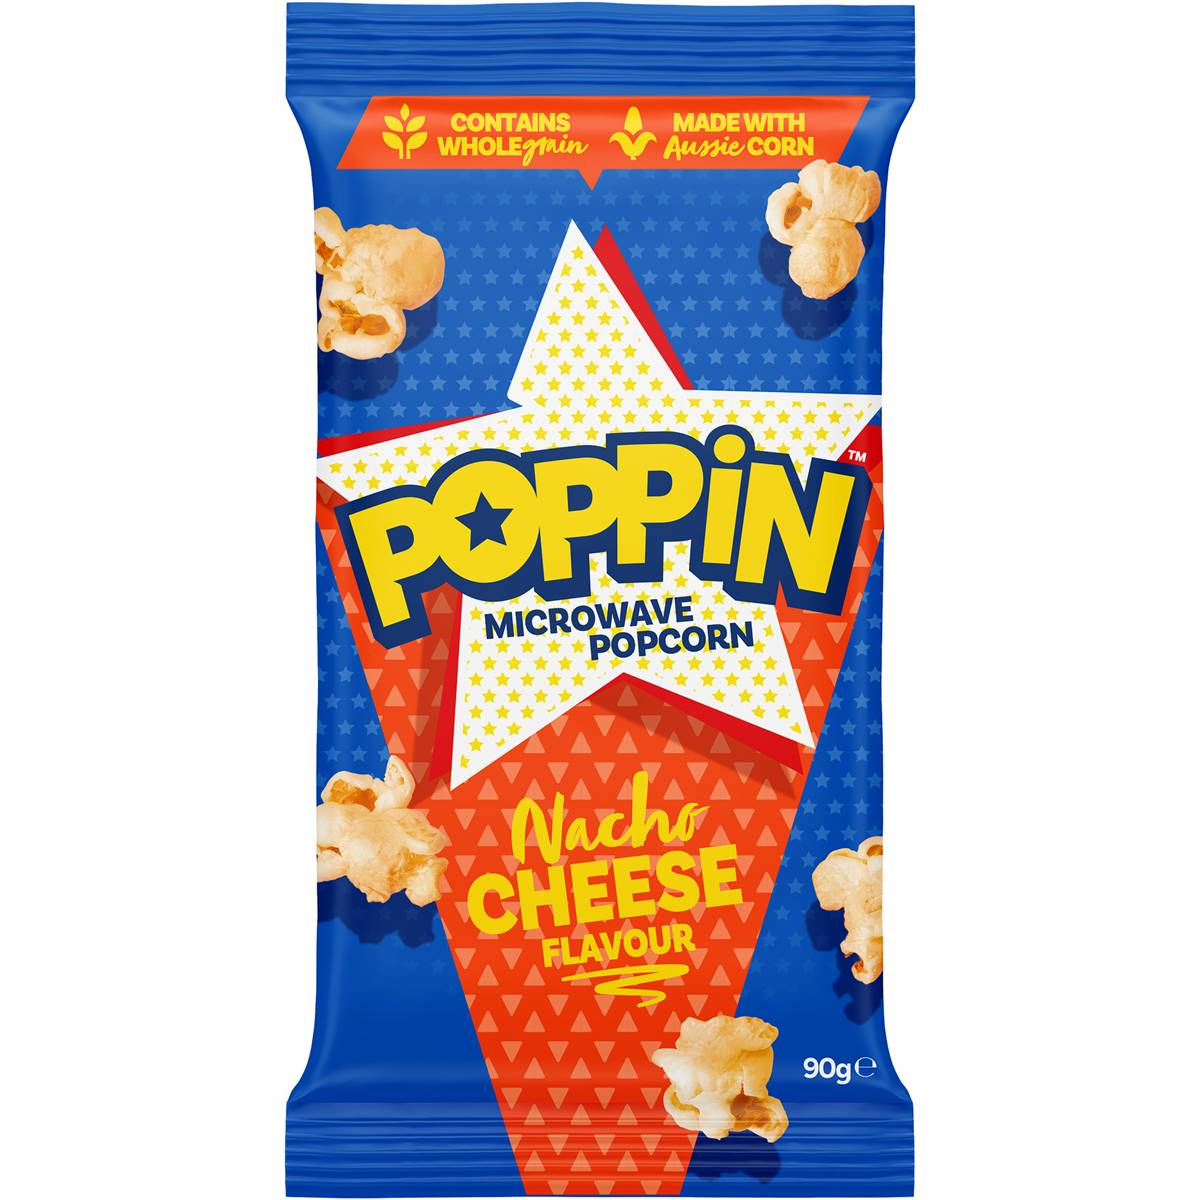 Poppin Microwave Popcorn Cheese Flavour